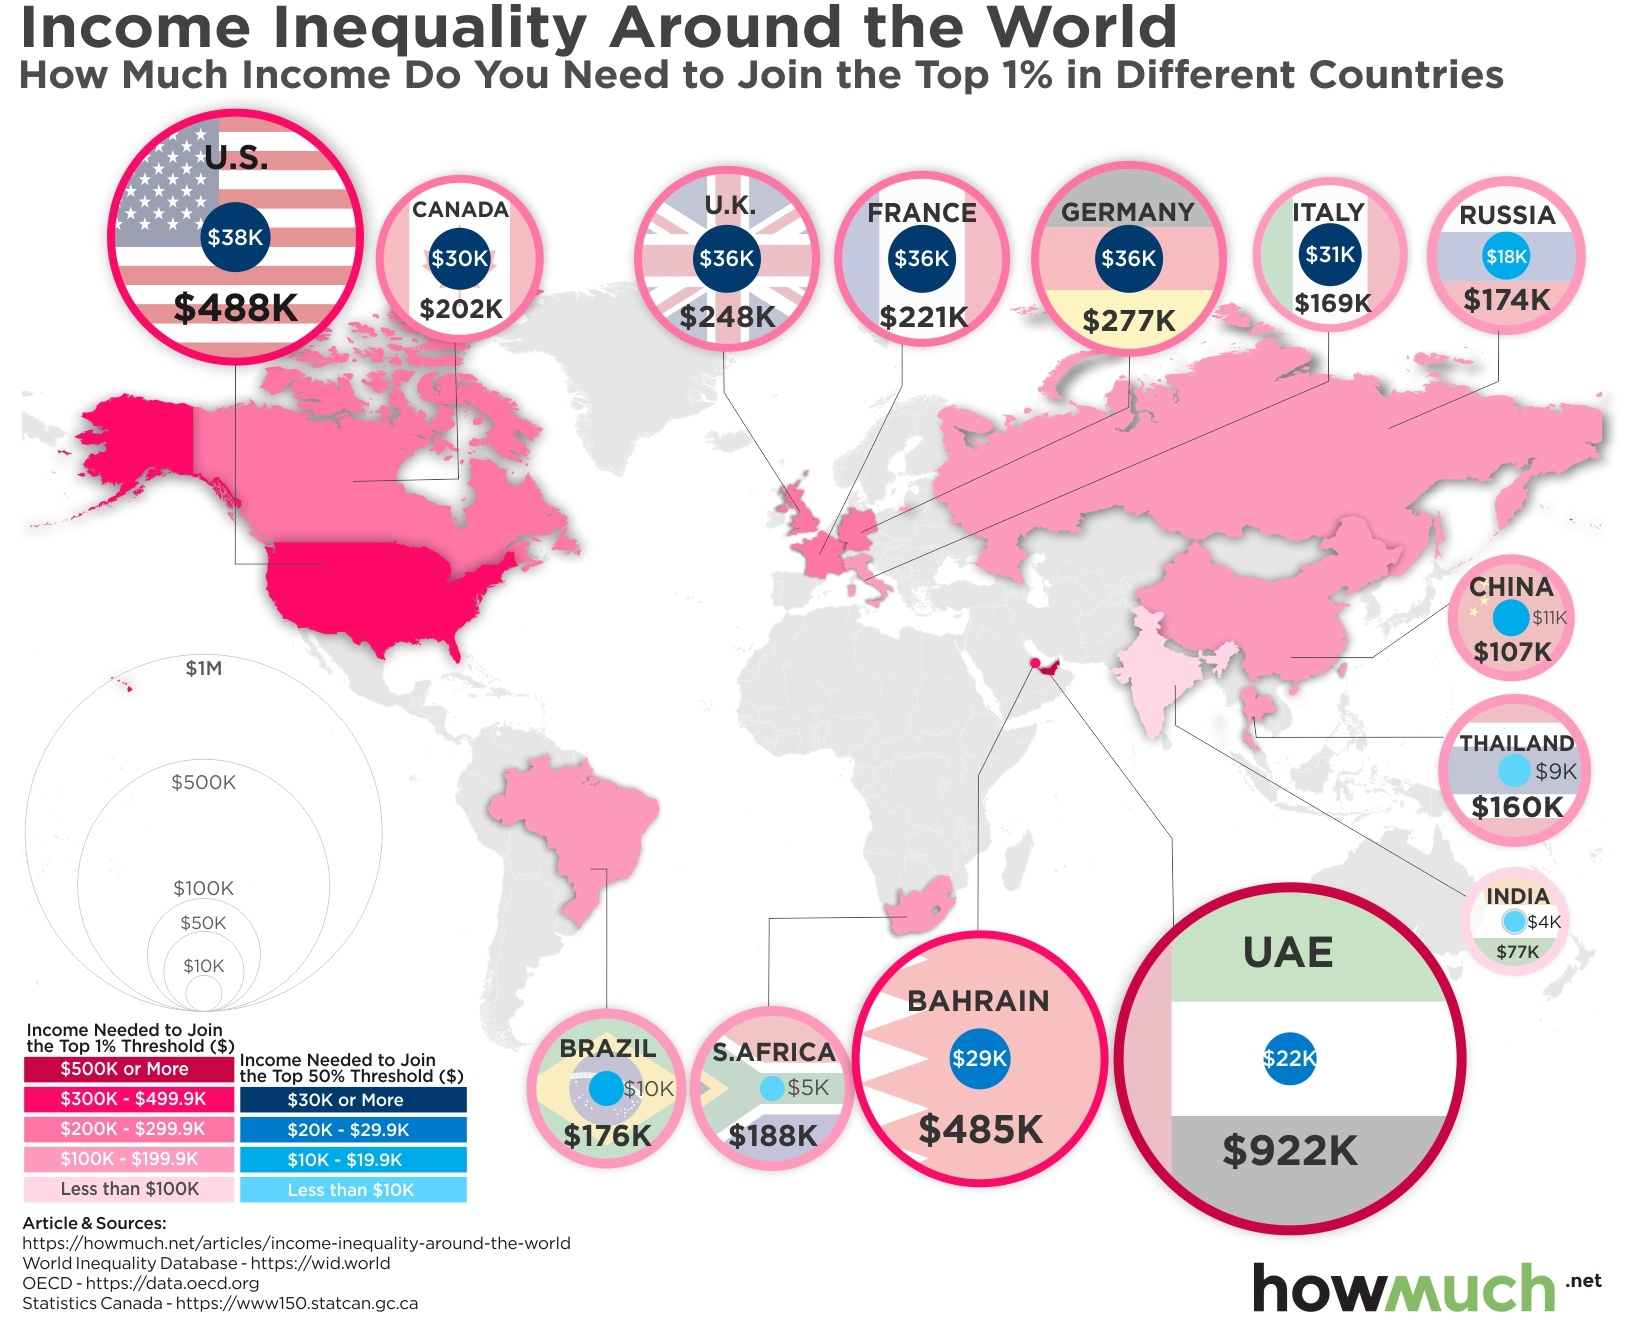 Income Inequality by Country